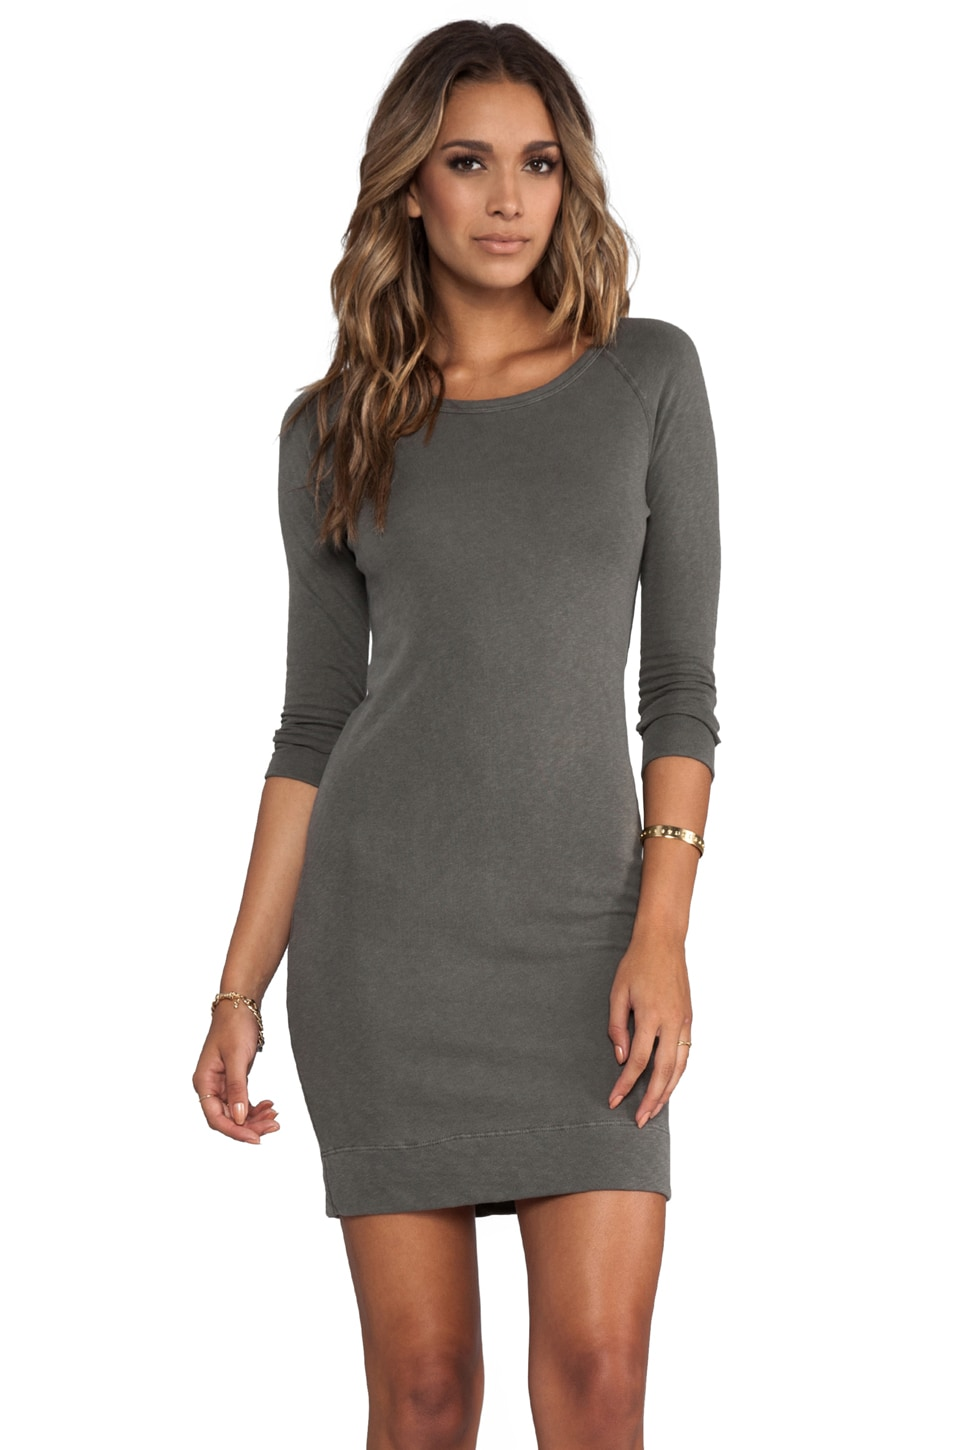 James Perse Raglan Sweatshirt Dress in Spruce